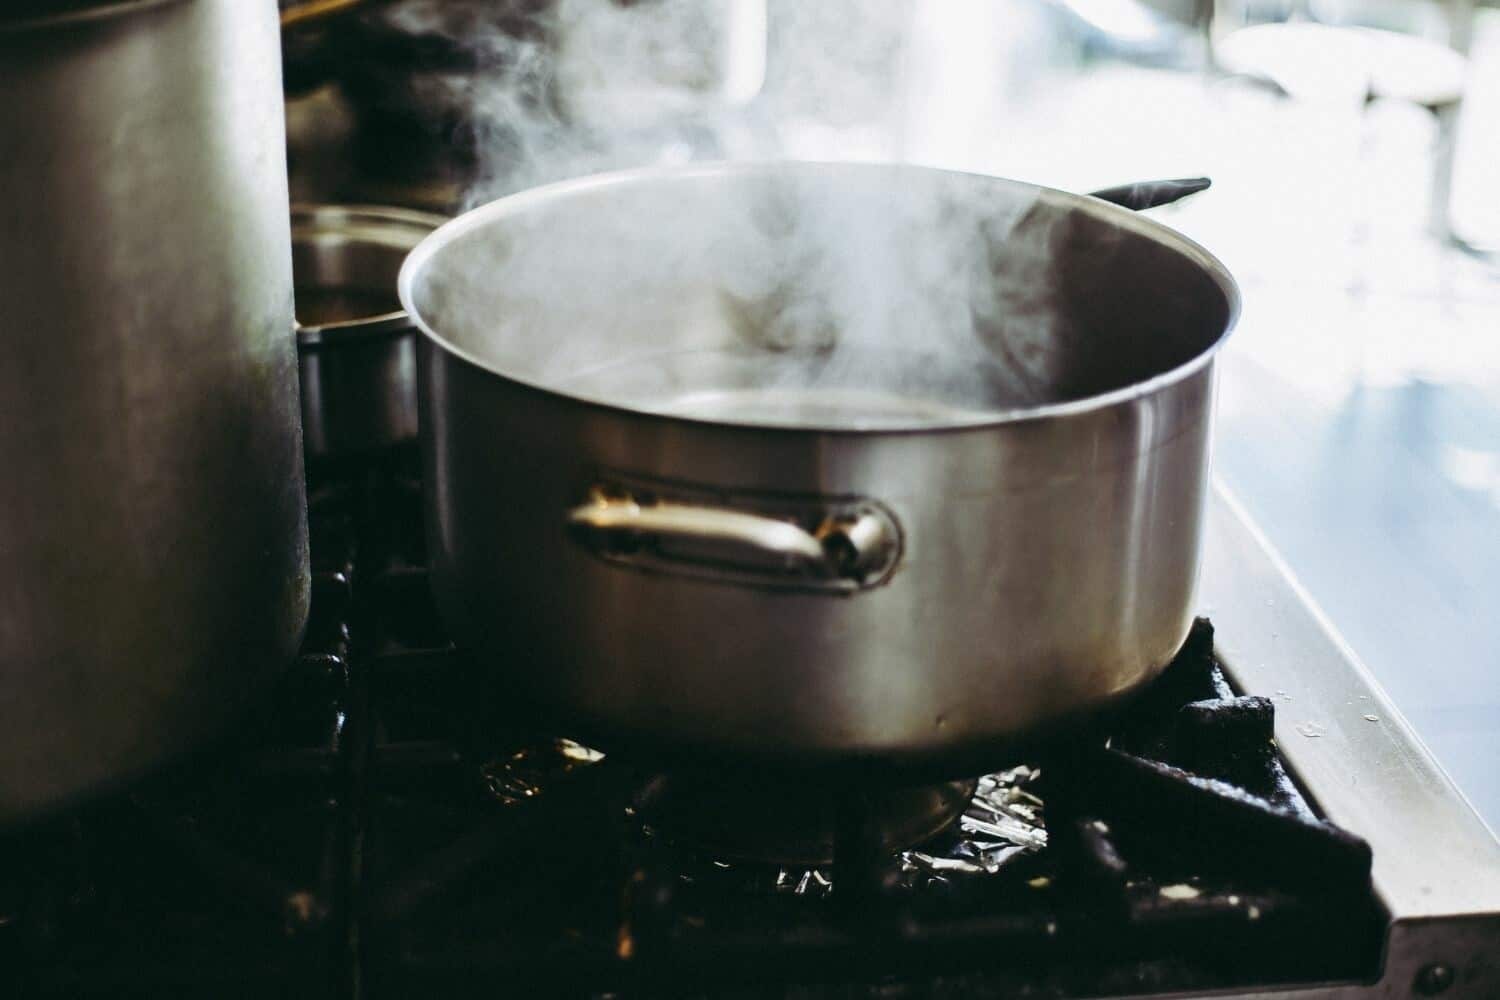 How to boil and what does it mean to boil when cooking?